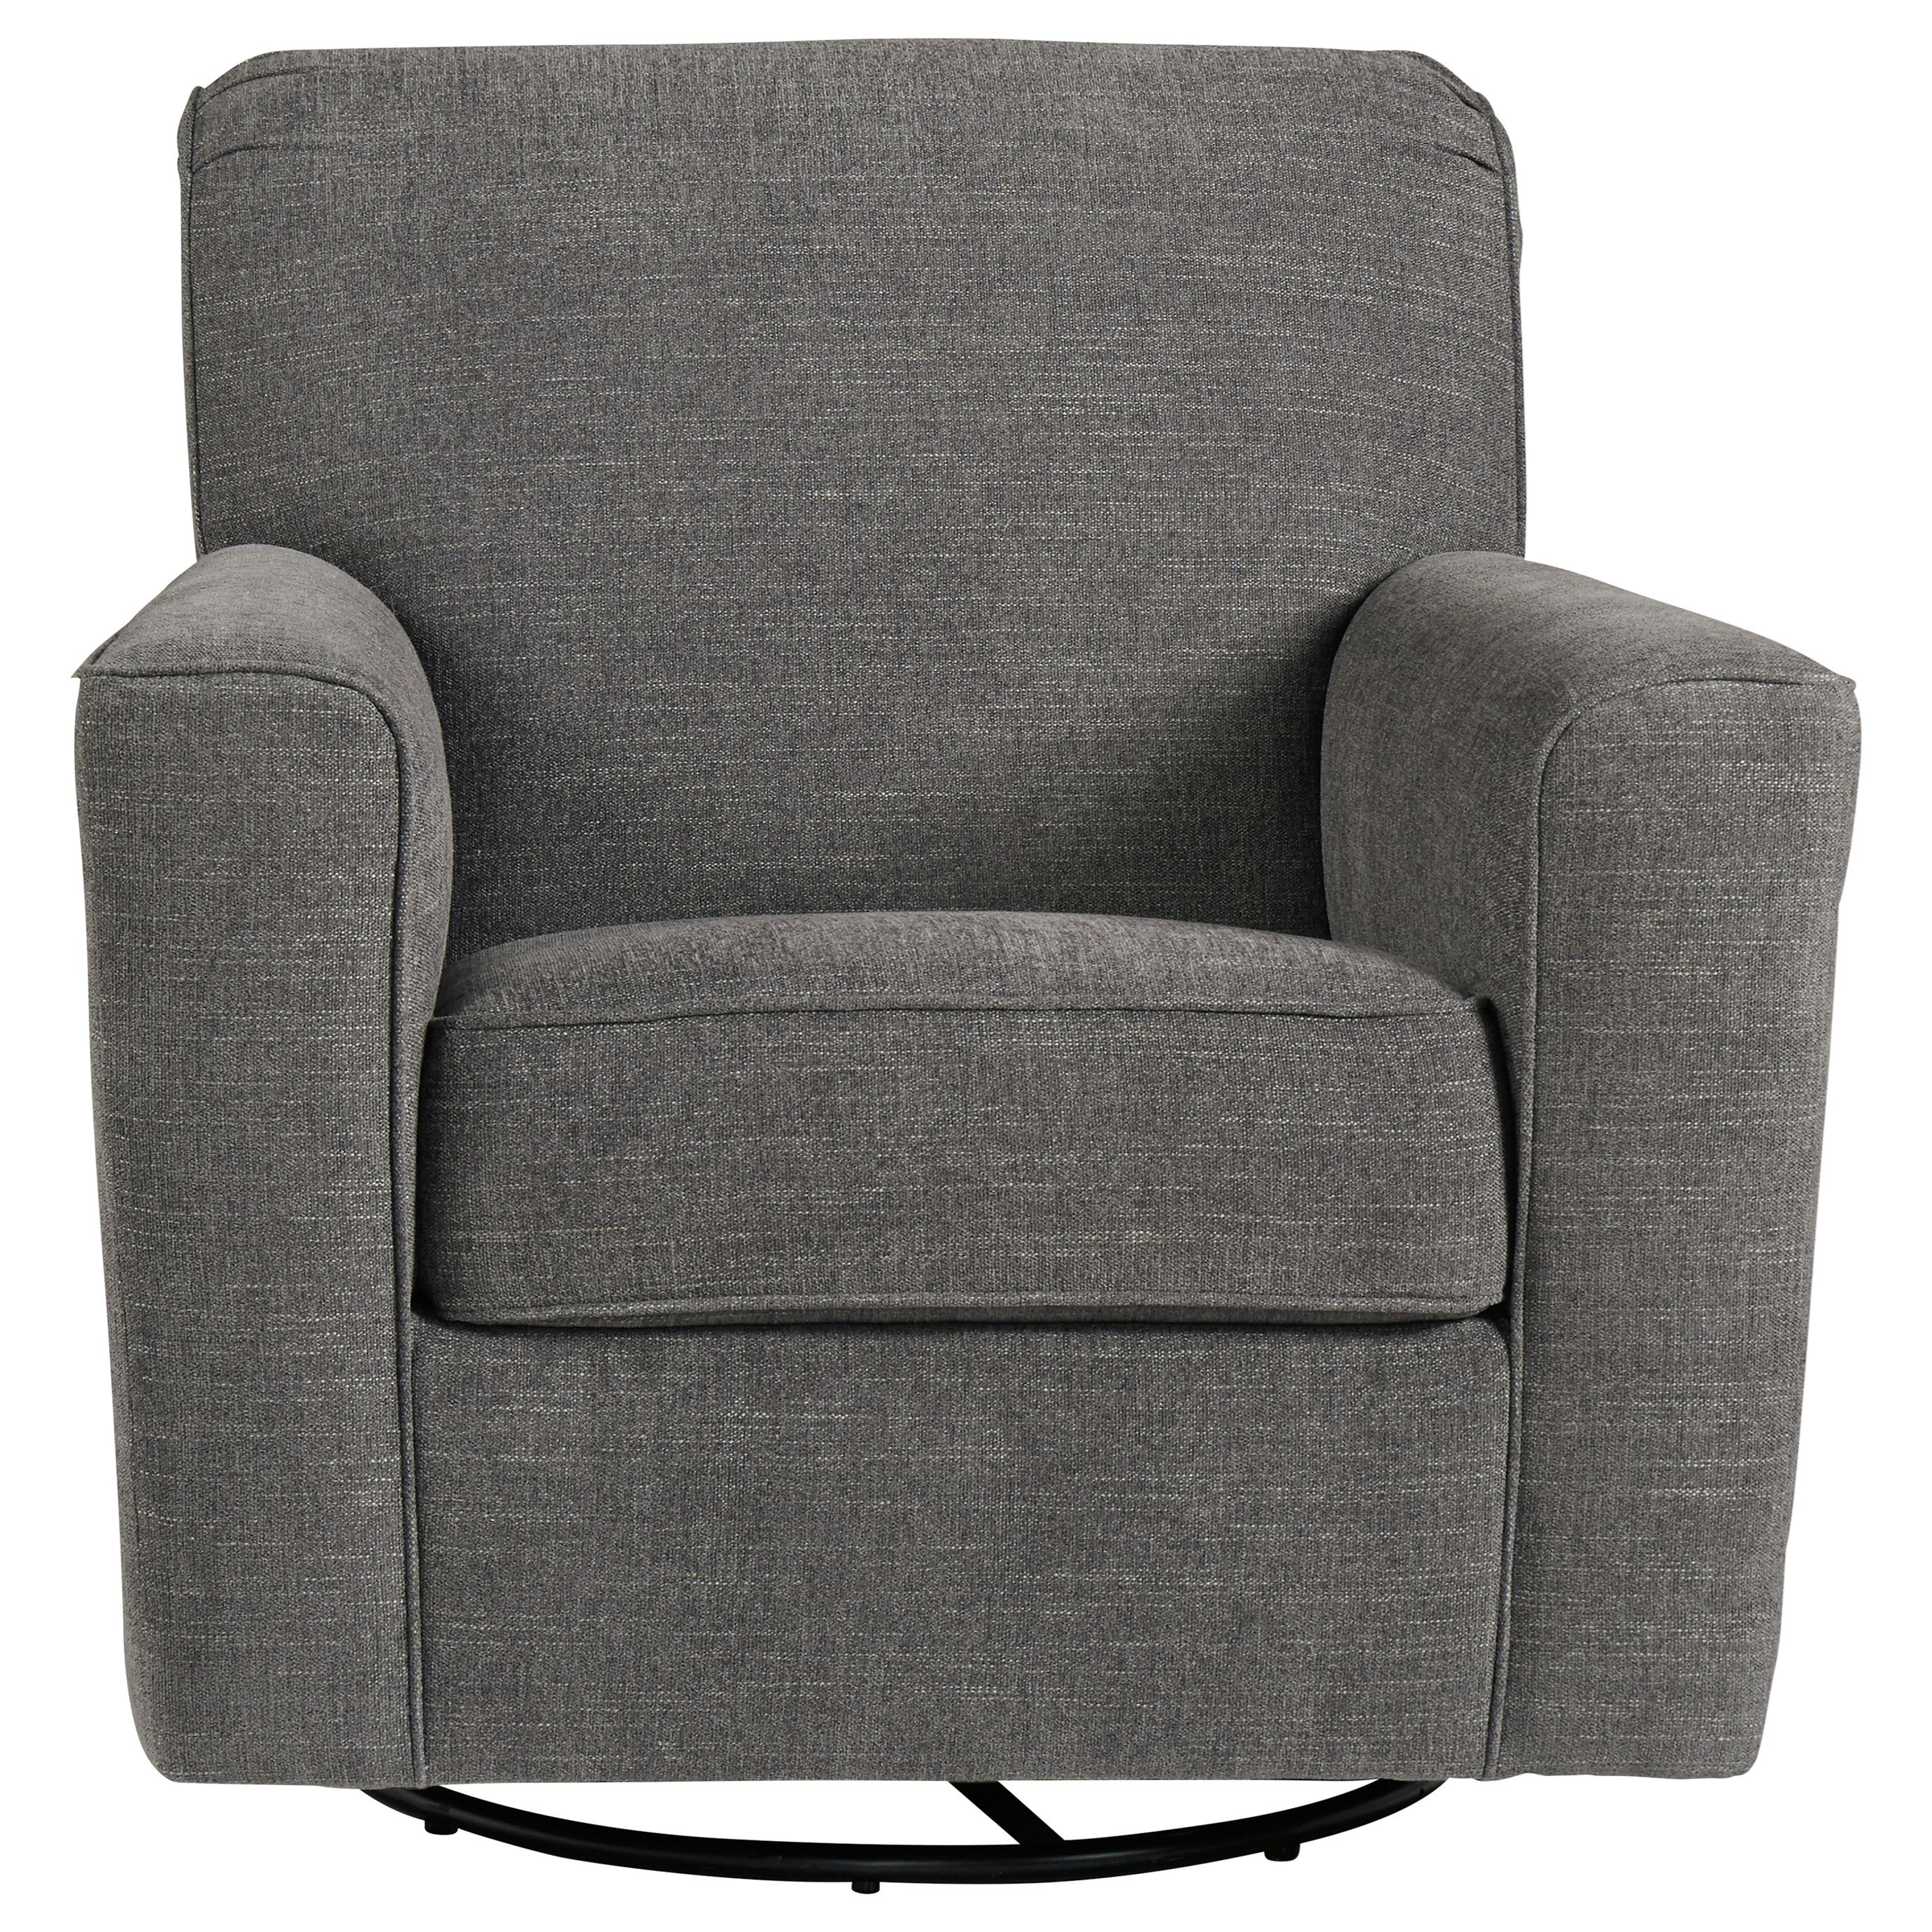 Alcona Swivel Glider Accent Chair by Ashley Furniture at Suburban Furniture